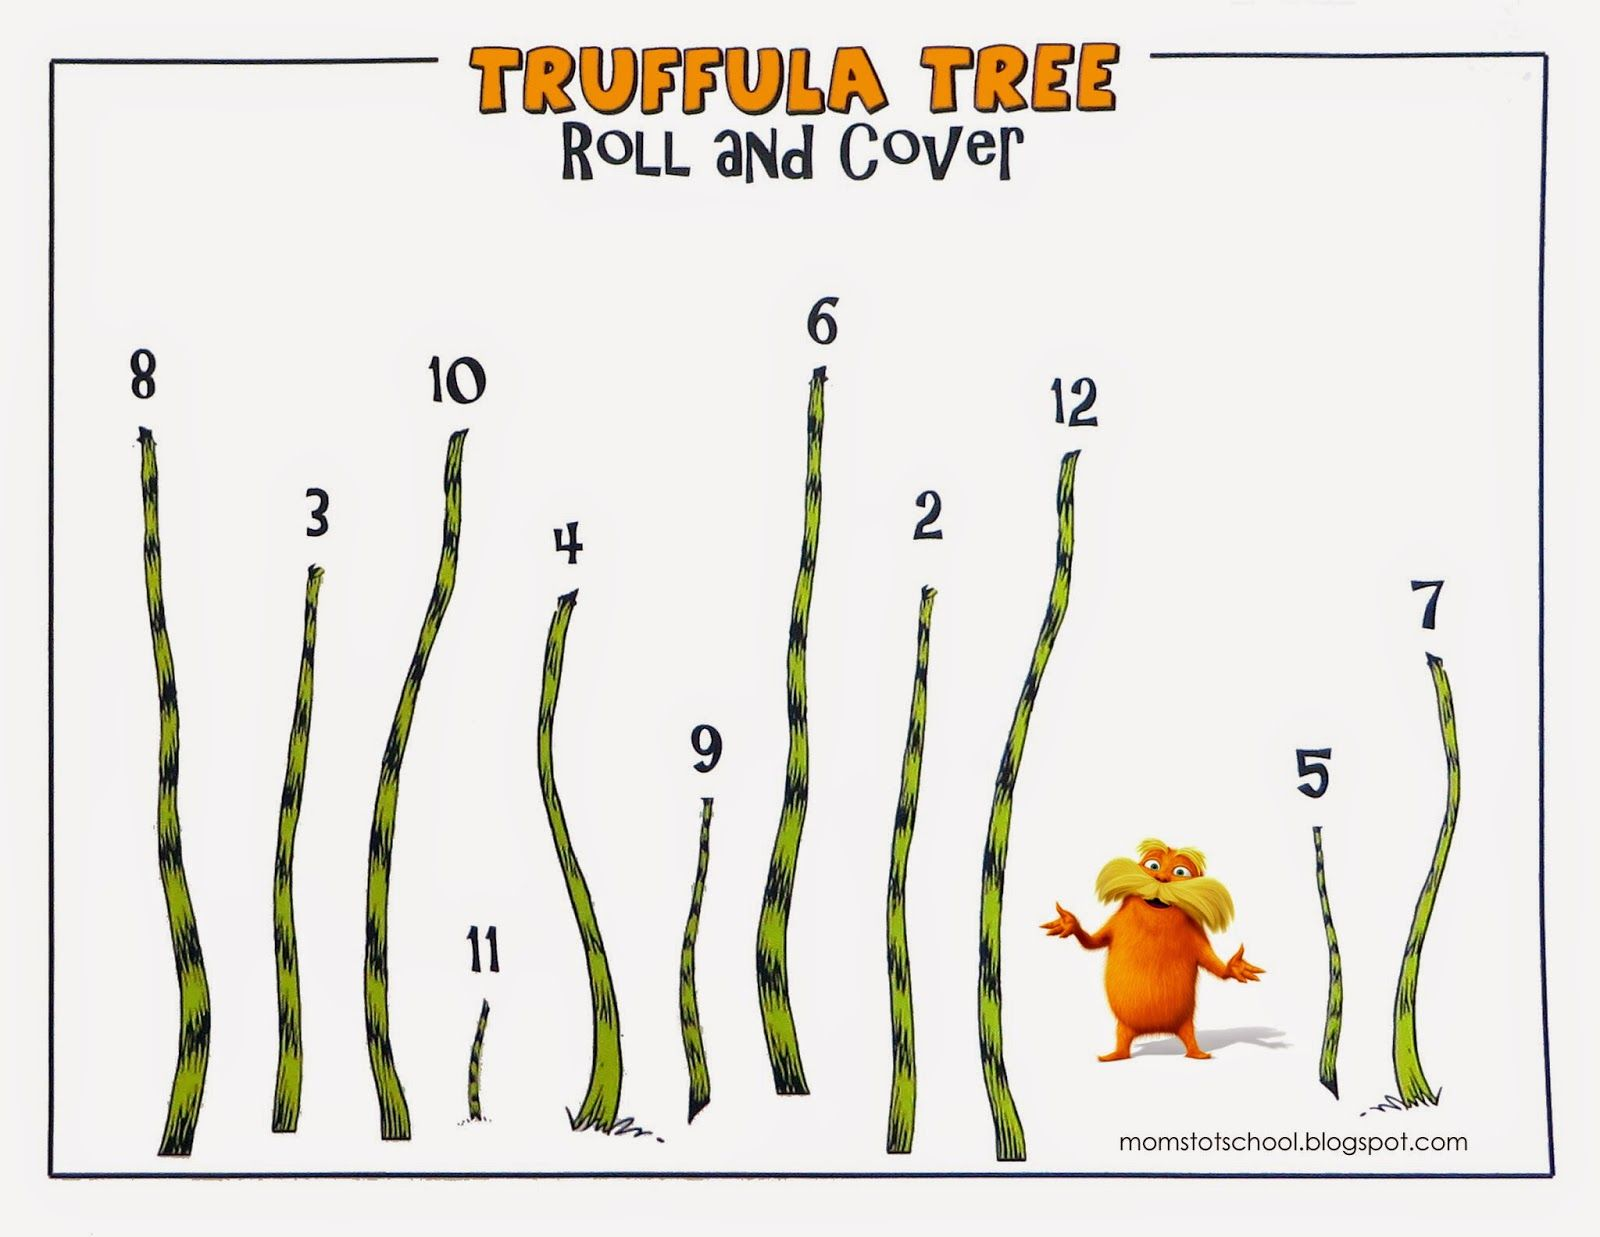 Dr. Seuss - The Lorax - Truffula Tree Roll and Cover Game - free ...